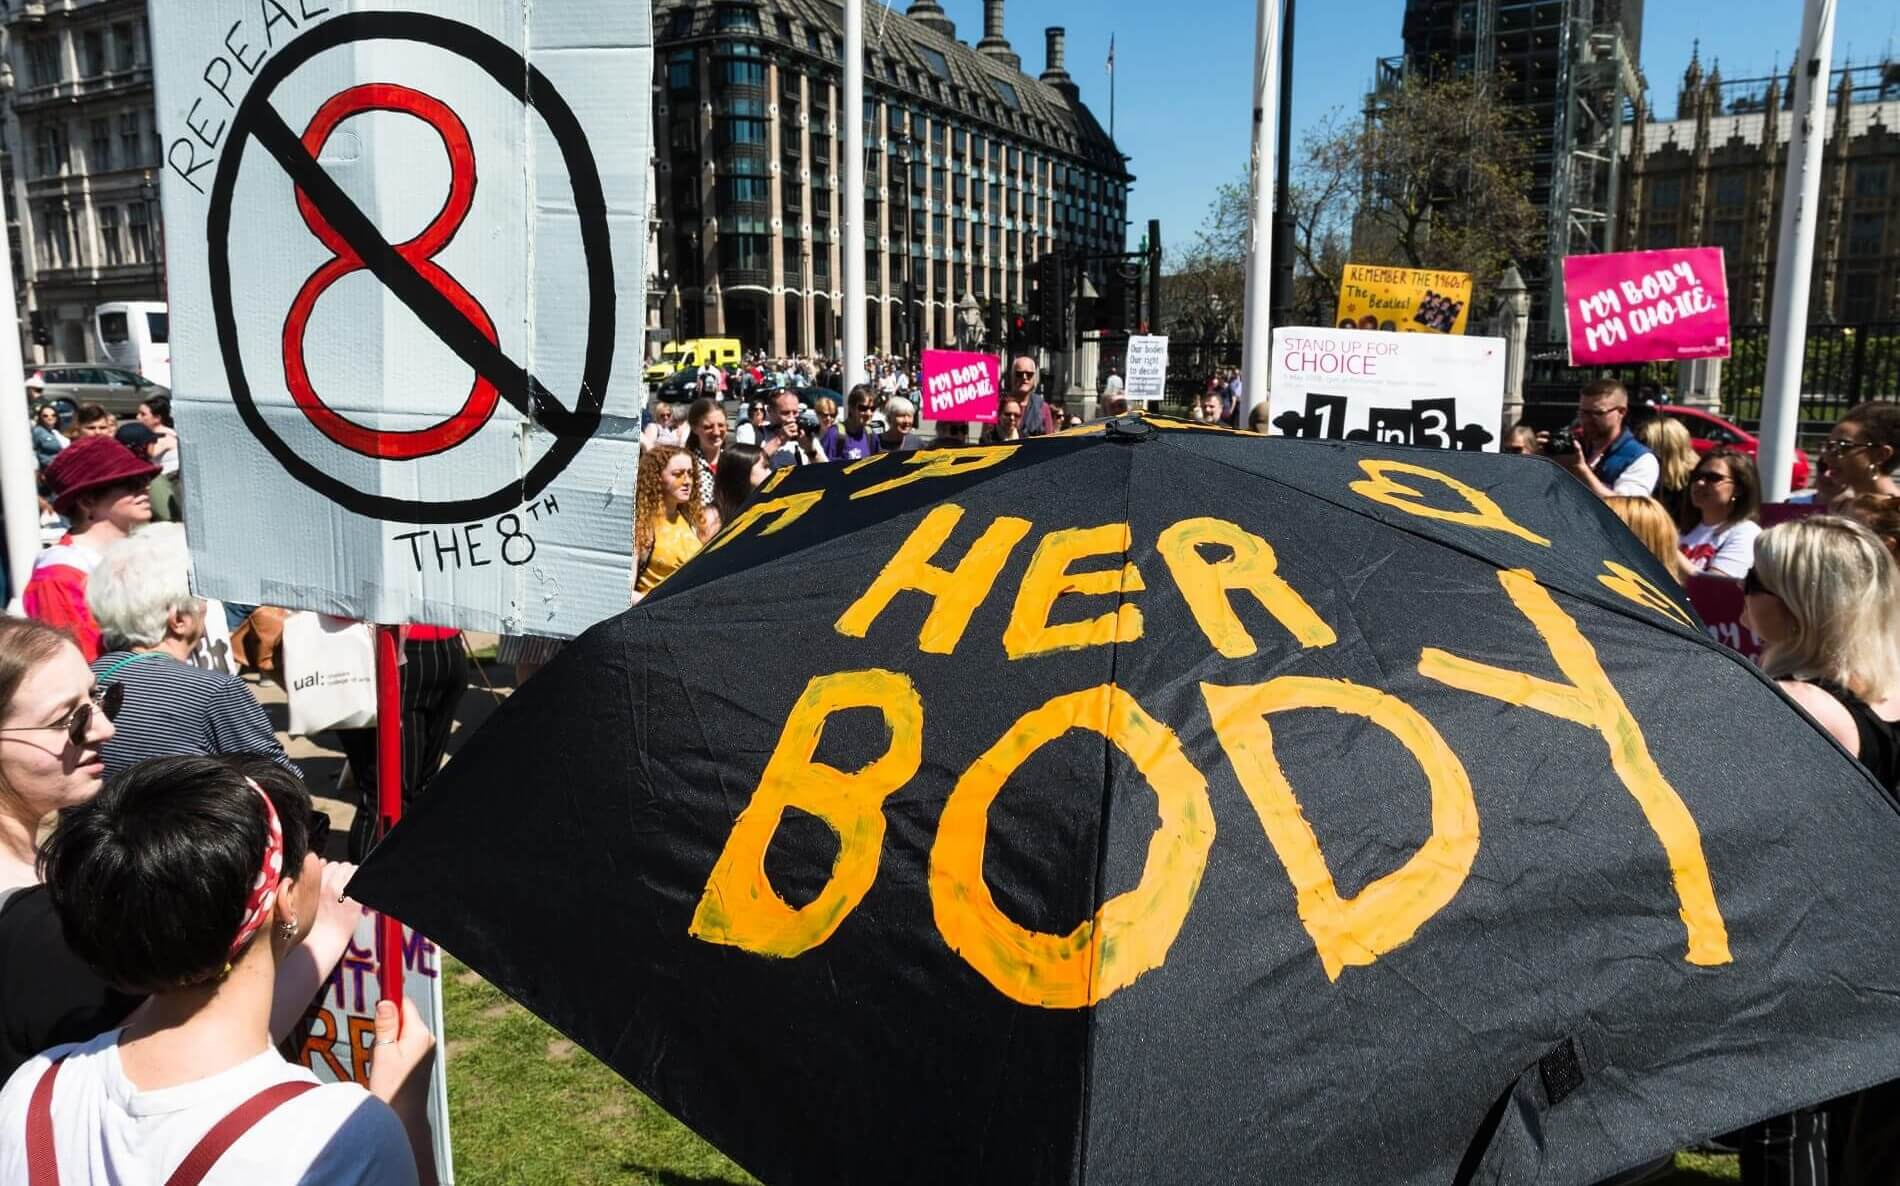 Pro-choice supporters rally in London ahead of Irish referendum (Photo: Wiktor Szymanowicz, via Getty)